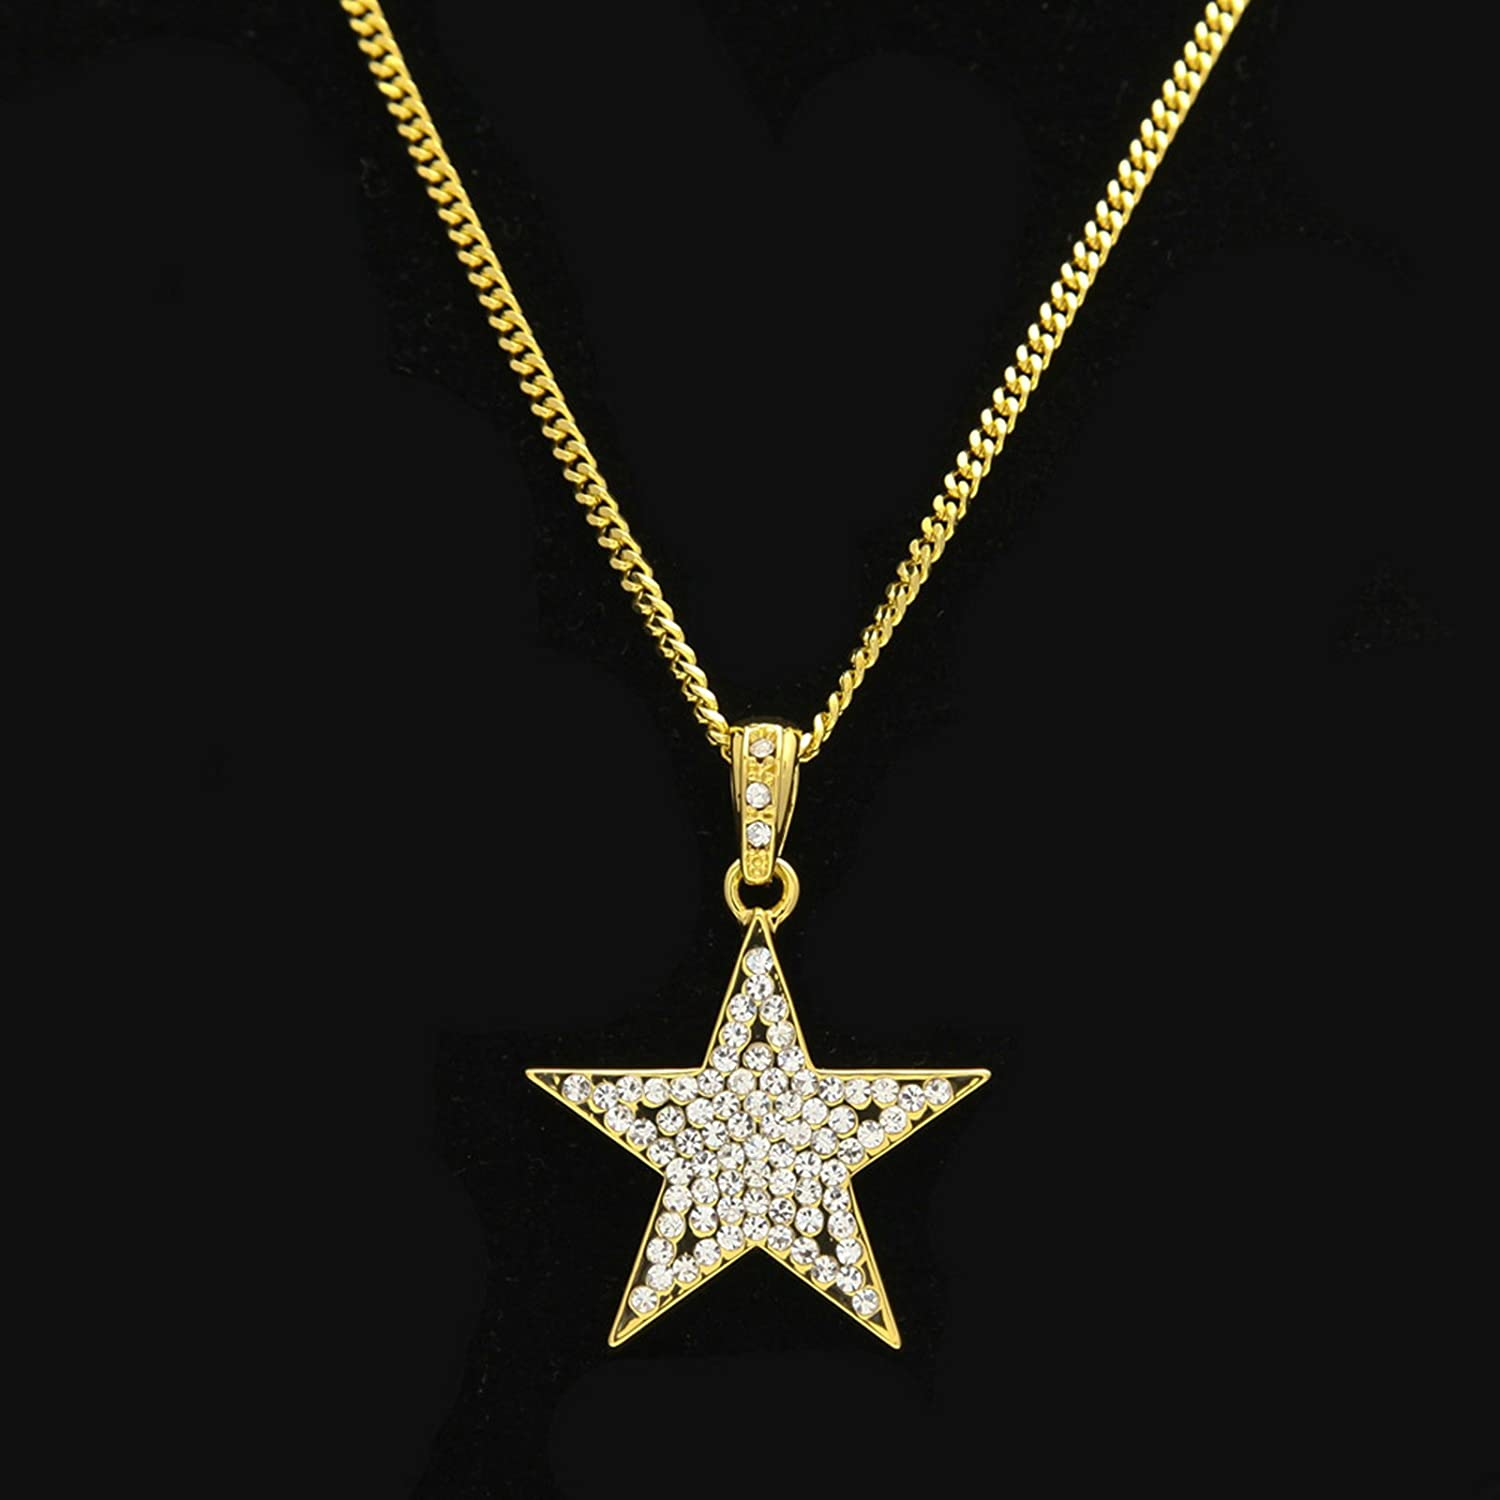 Cuban//Twist Chain 24 Aokarry Mens Womens Five-Pointed Star Iced Out Cubic Zirconia Pendant Necklace